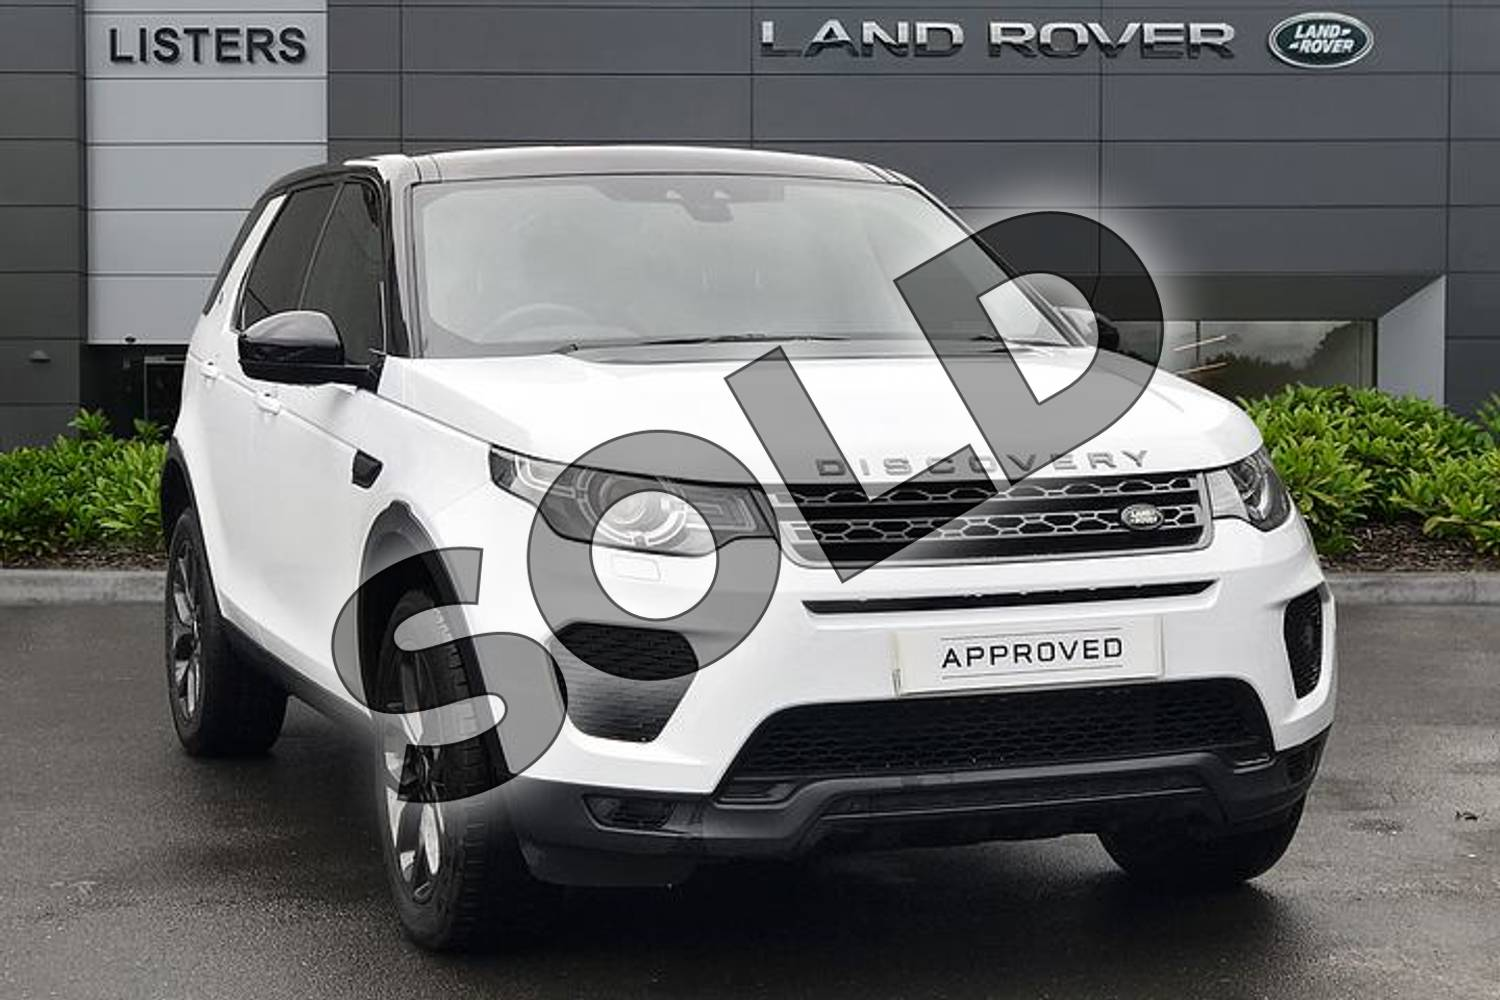 2019 Land Rover Discovery Sport 2.0 TD4 (180hp) Landmark in Yulong White at Listers Land Rover Droitwich